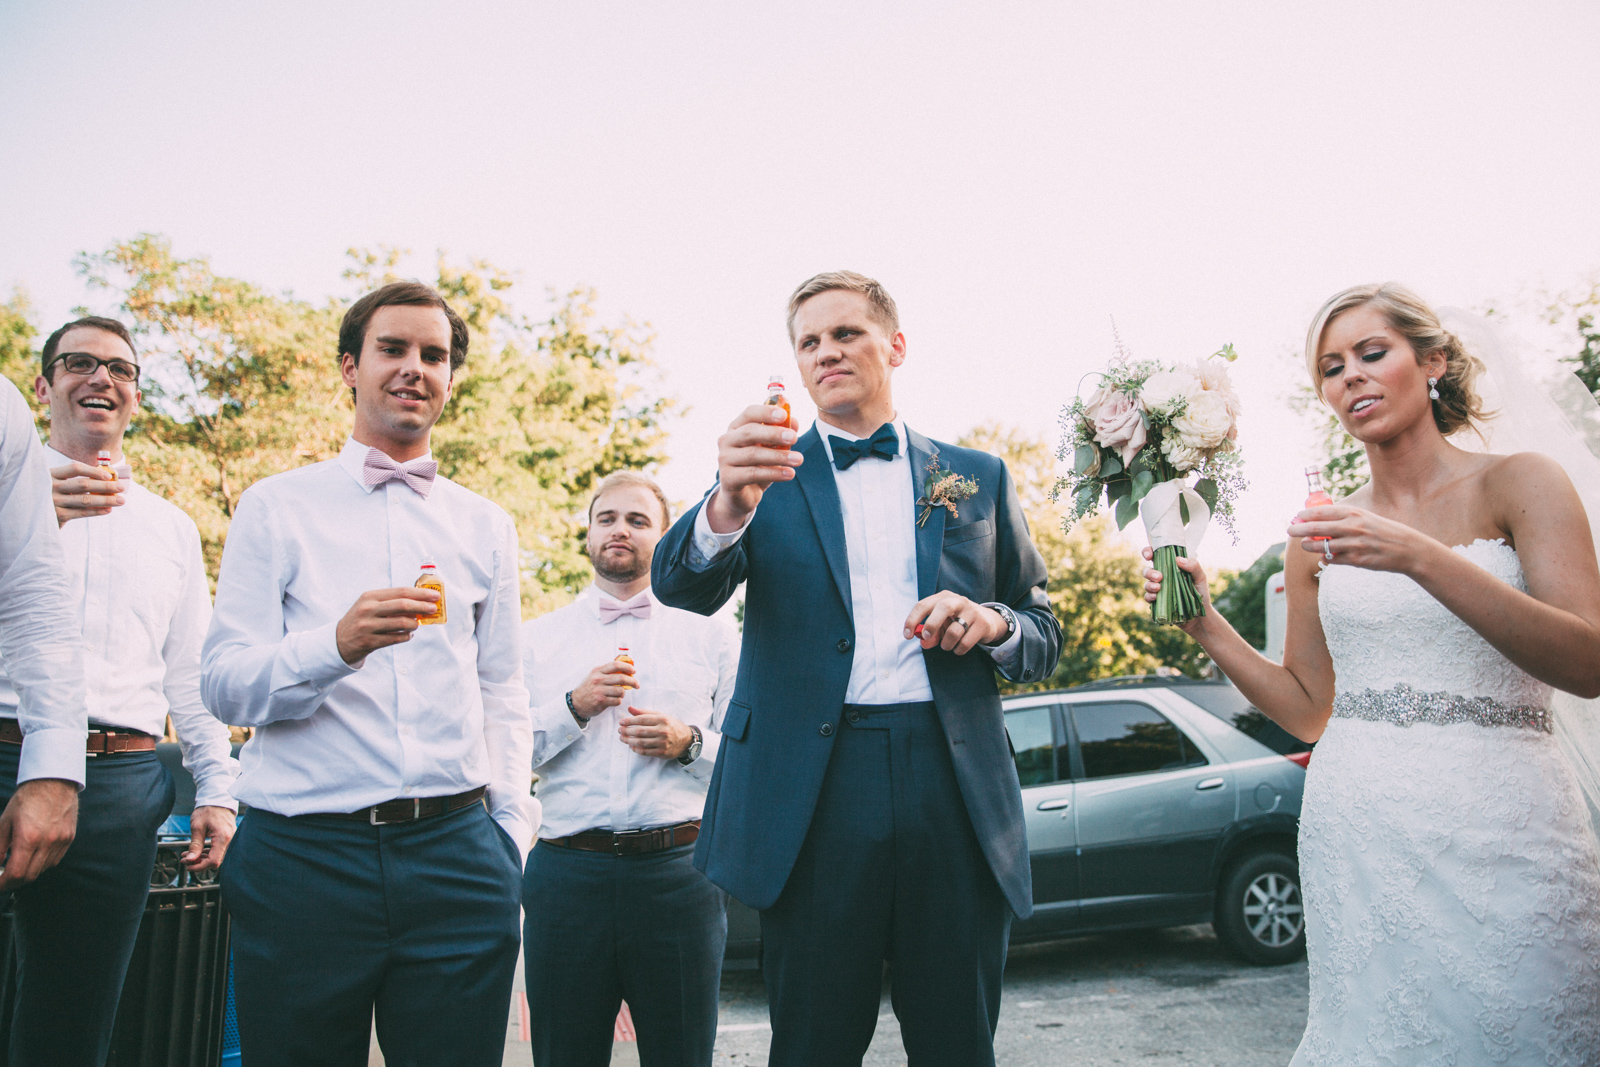 Bride and groom impromptu toast with wedding party